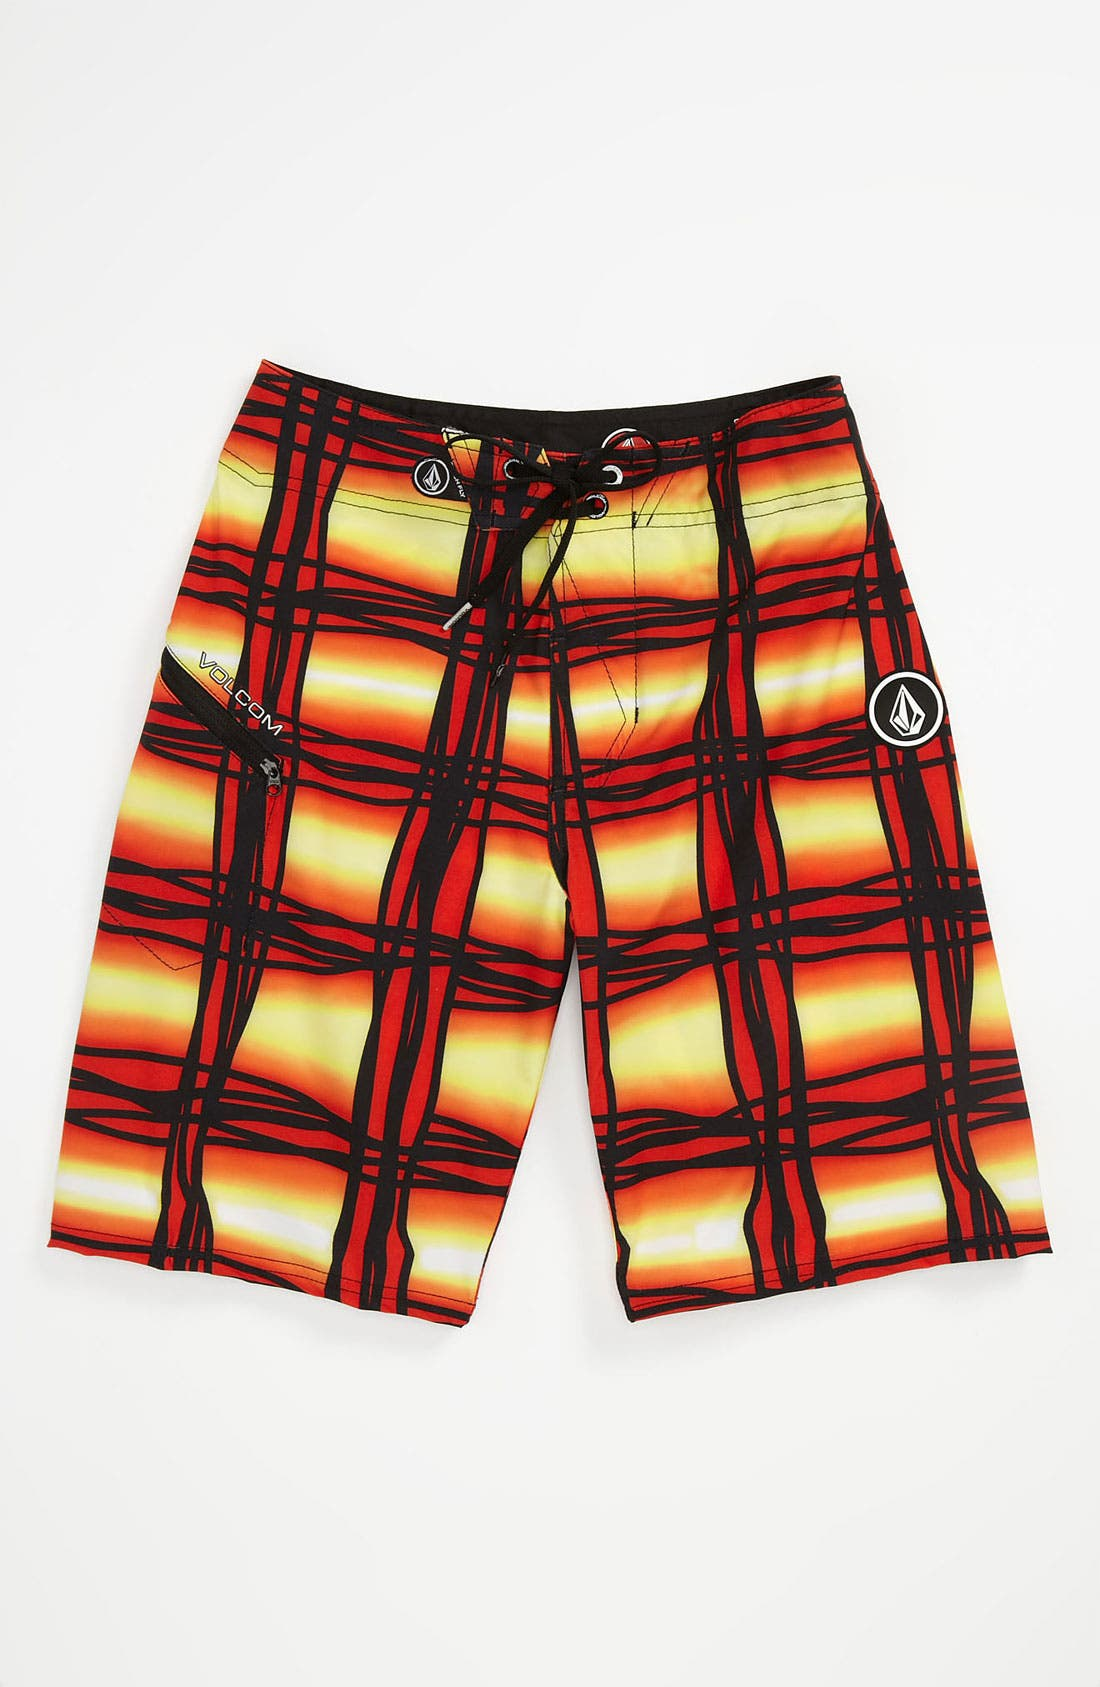 Alternate Image 1 Selected - Volcom 'Wavey Plaid' Board Shorts (Big Boys)